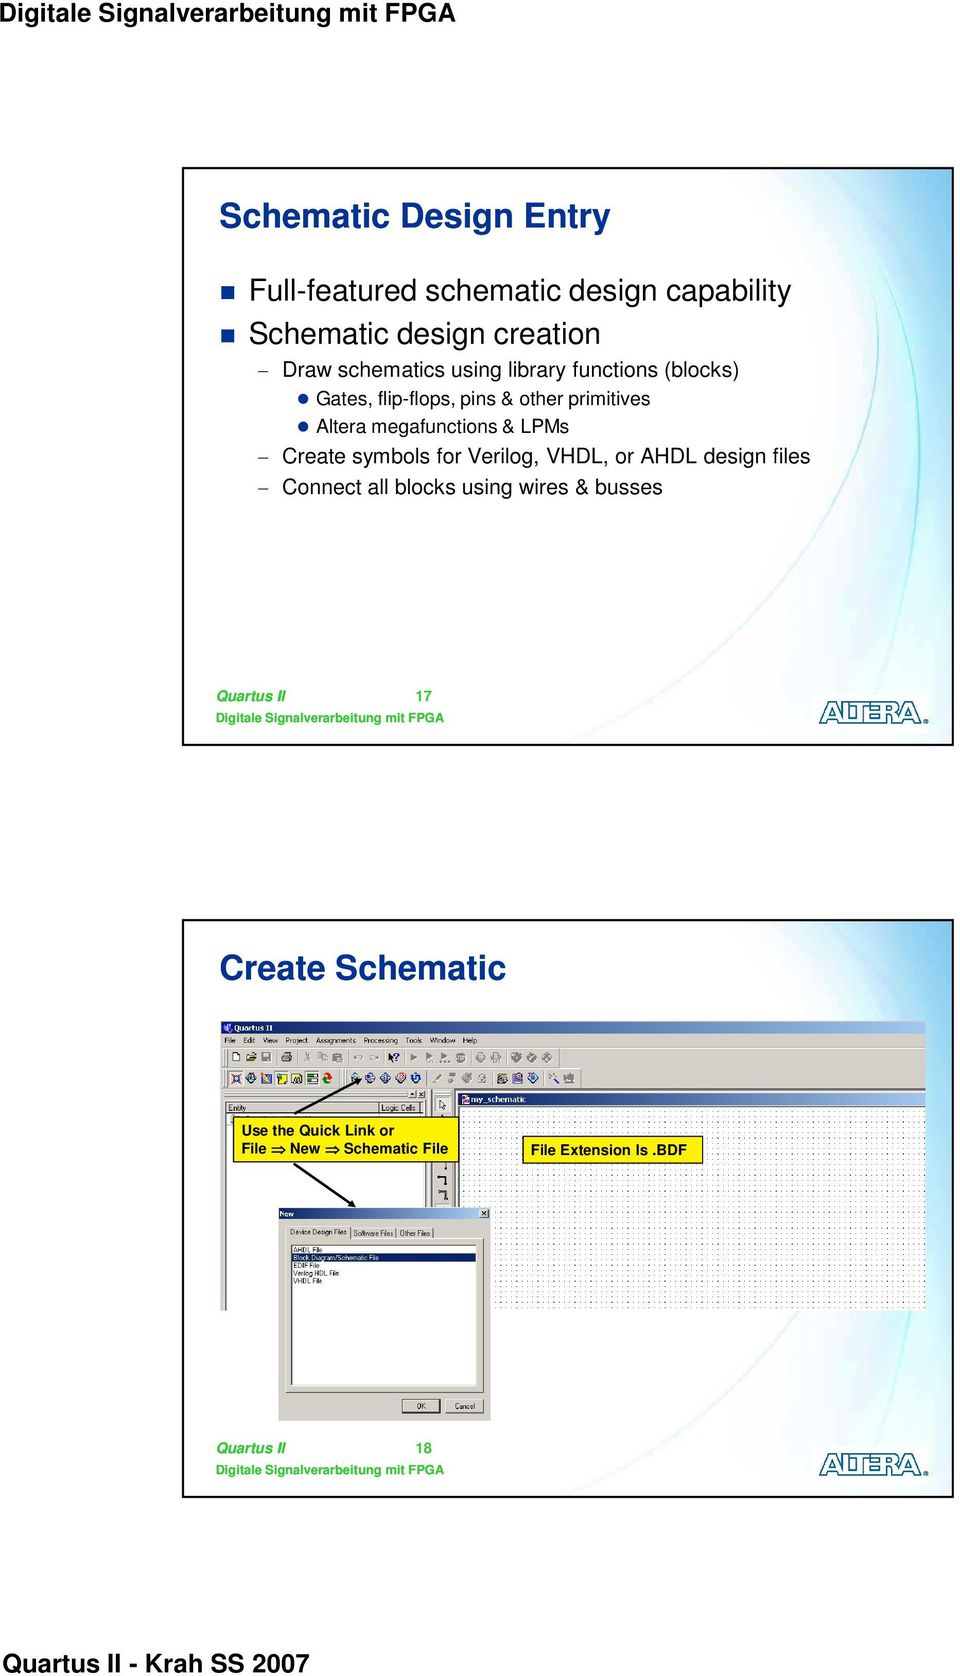 Quartus Ii Software Design Series Foundation Digitale 2 Block Diagram Tutorial Megafunctions Lpms Create Symbols For Verilog Vhdl Or Ahdl Files Connect All